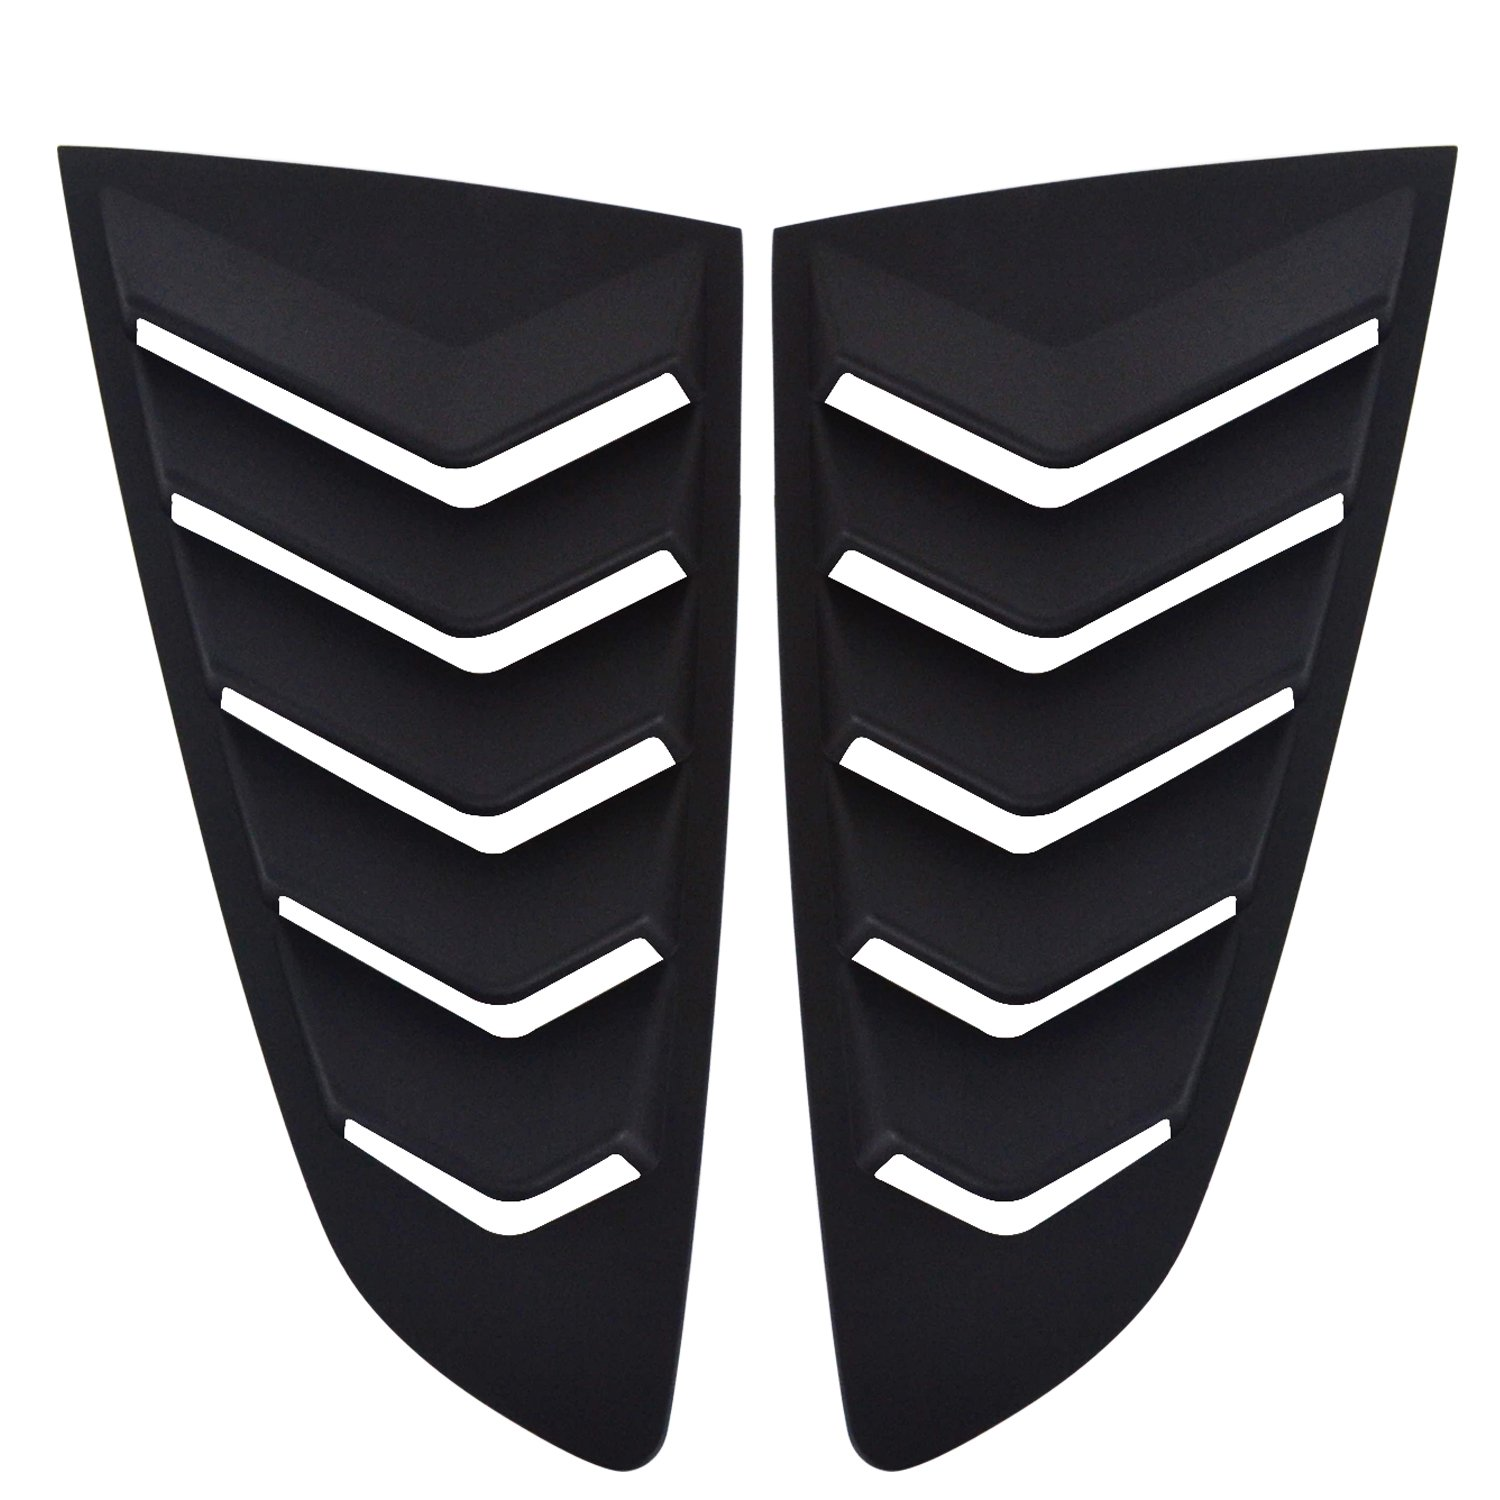 u-Box Ford Mustang Window Louver Vents Rear Side Quarter ¼ Side Black Window Scoops for Ford Mustang 2015-2017